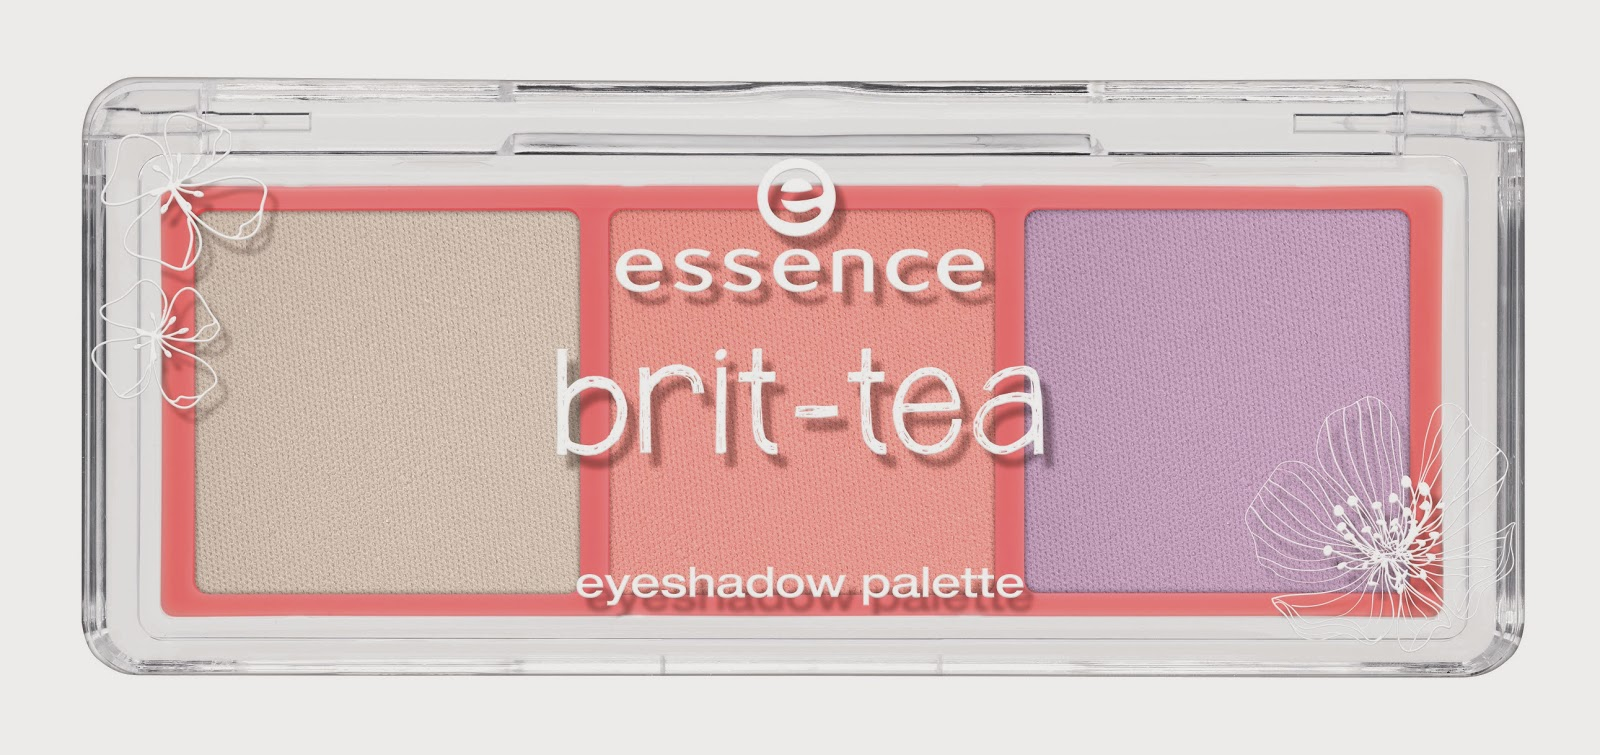 essence-brit-tea-limited-edition-preview-eyeshadow-palette